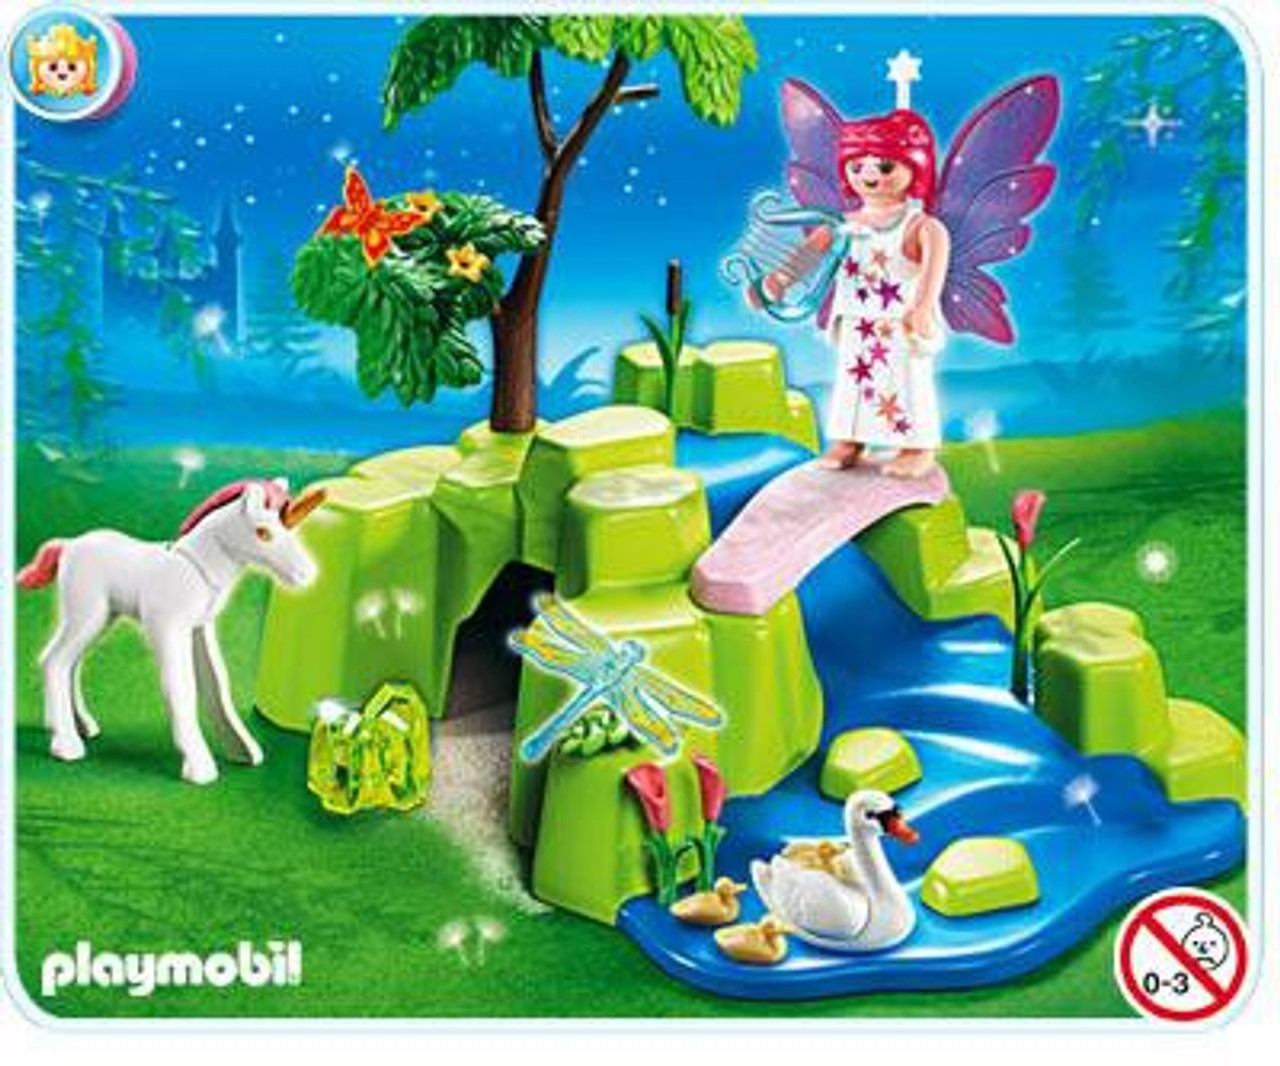 Playmobil Magic Castle Fairy Garden Set #4148